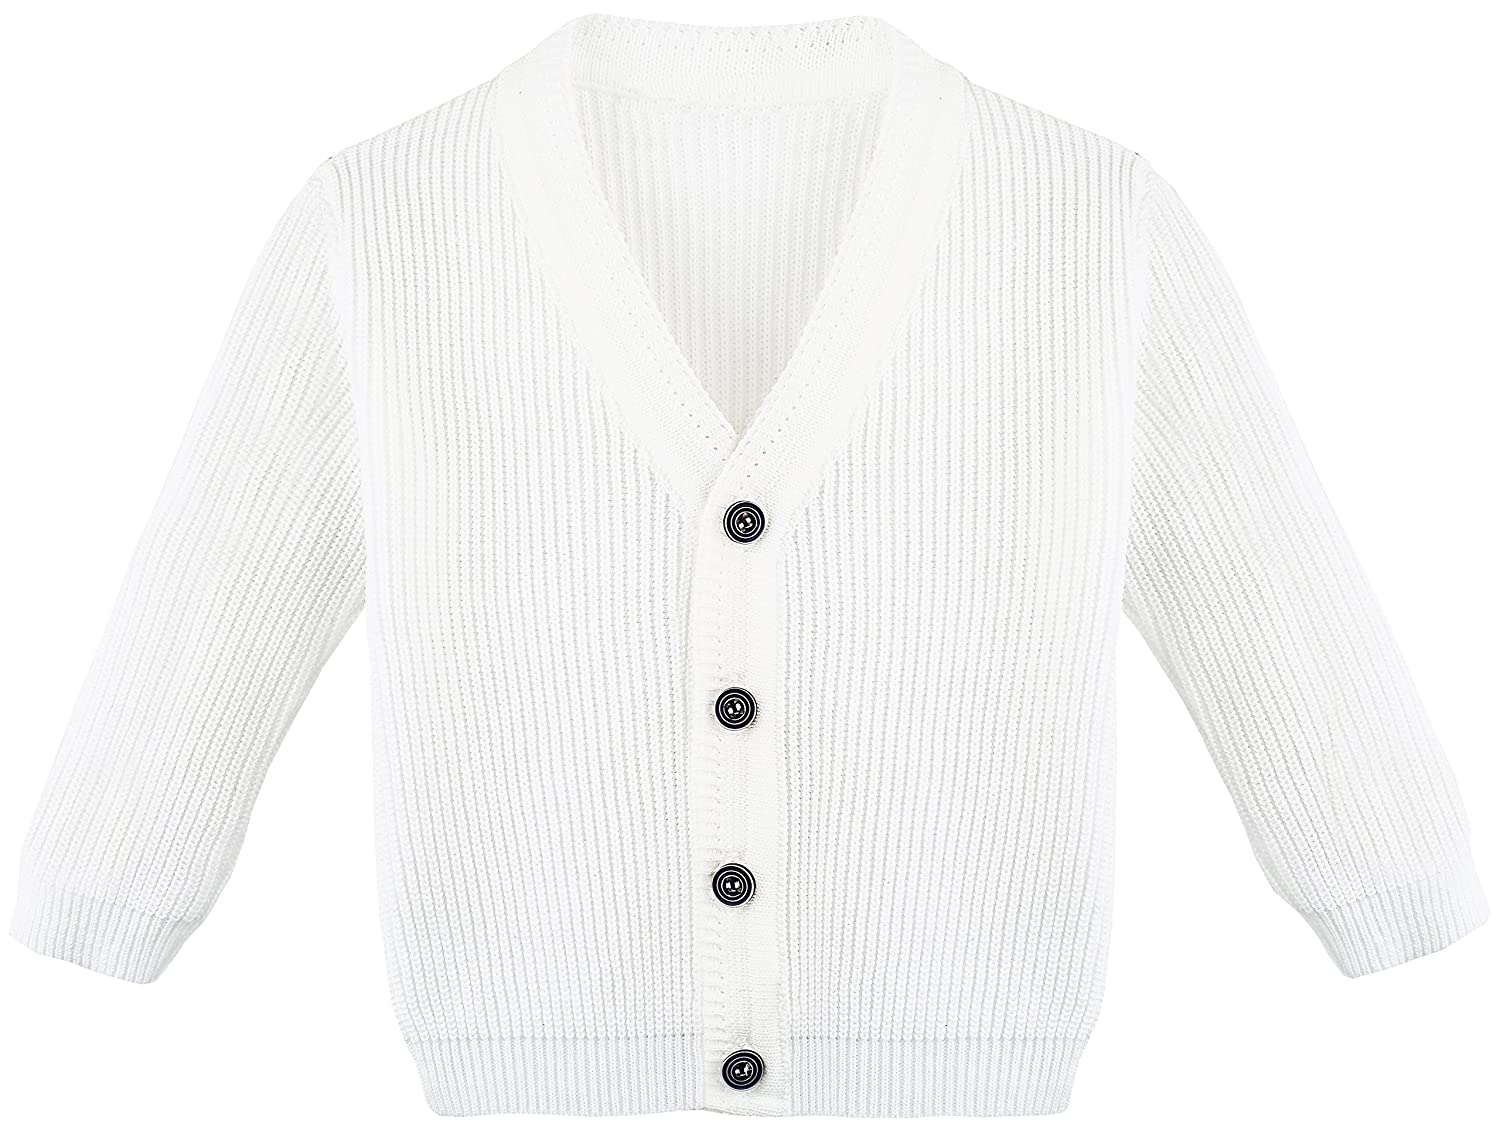 Lilax Little Boys Basic Long Sleeve V-Neck Classic Knit Cardigan Sweater